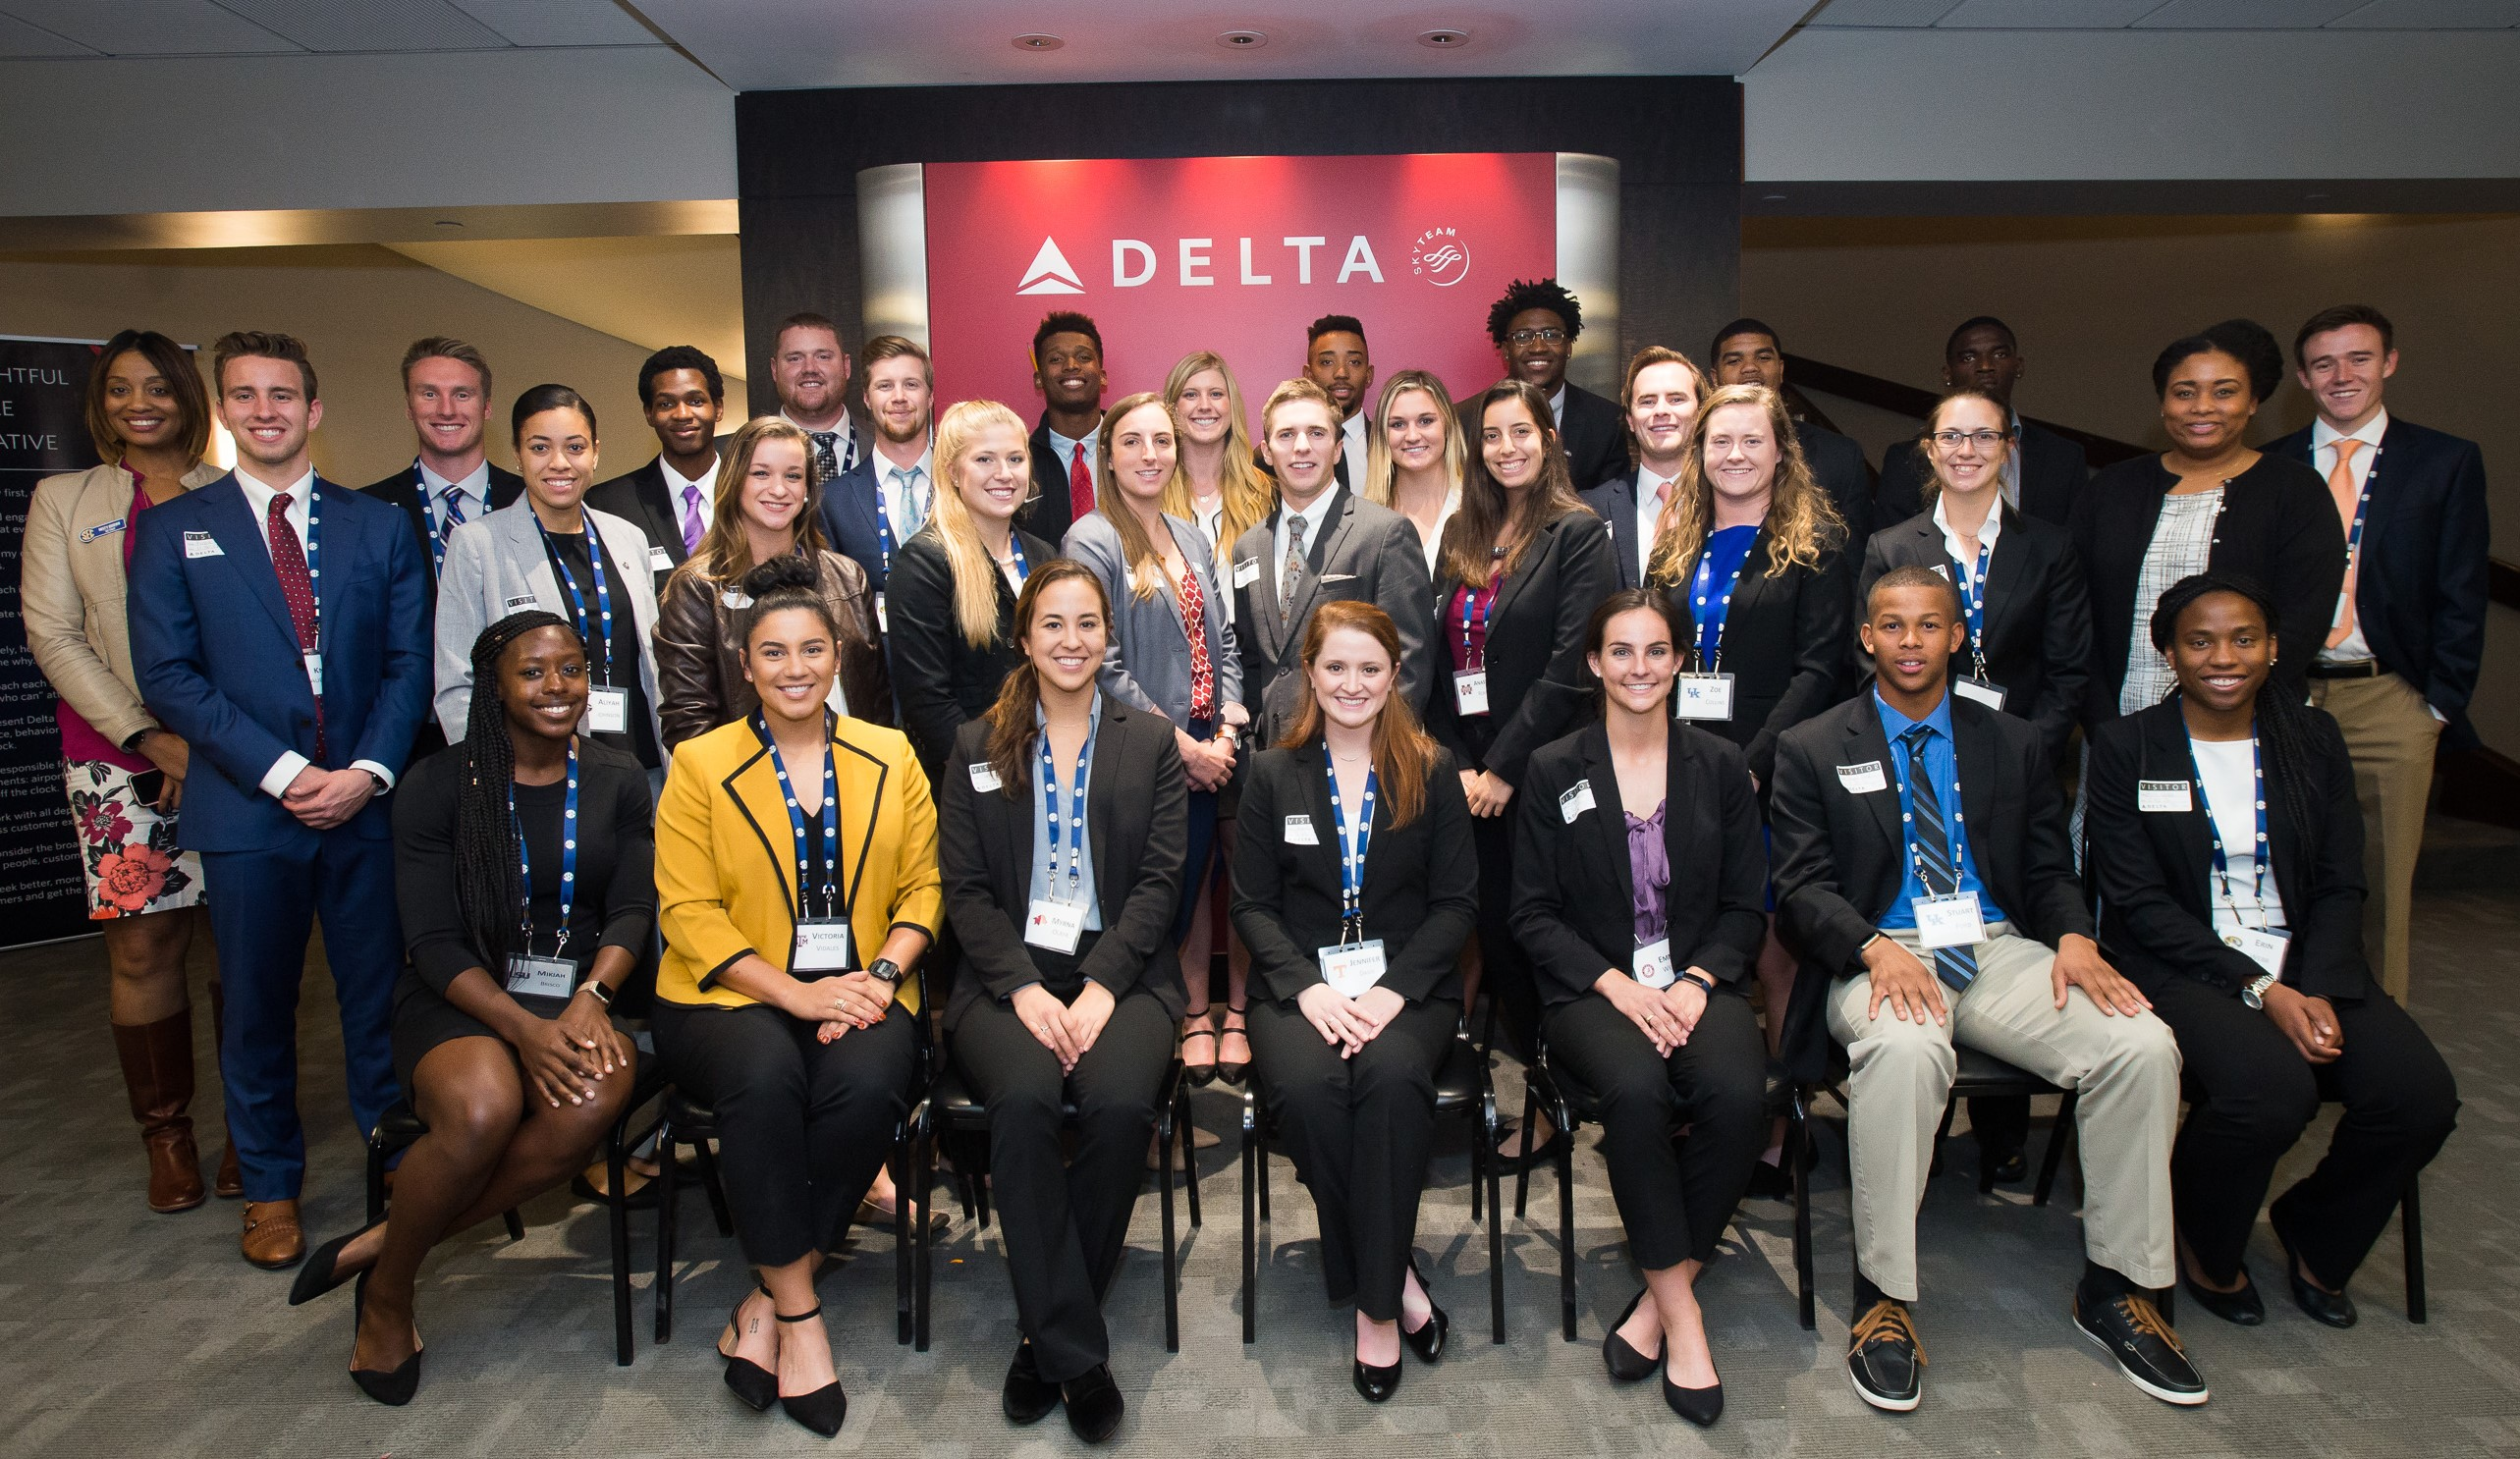 SEC Student-Athletes To Participate In Third Annual Career Tour